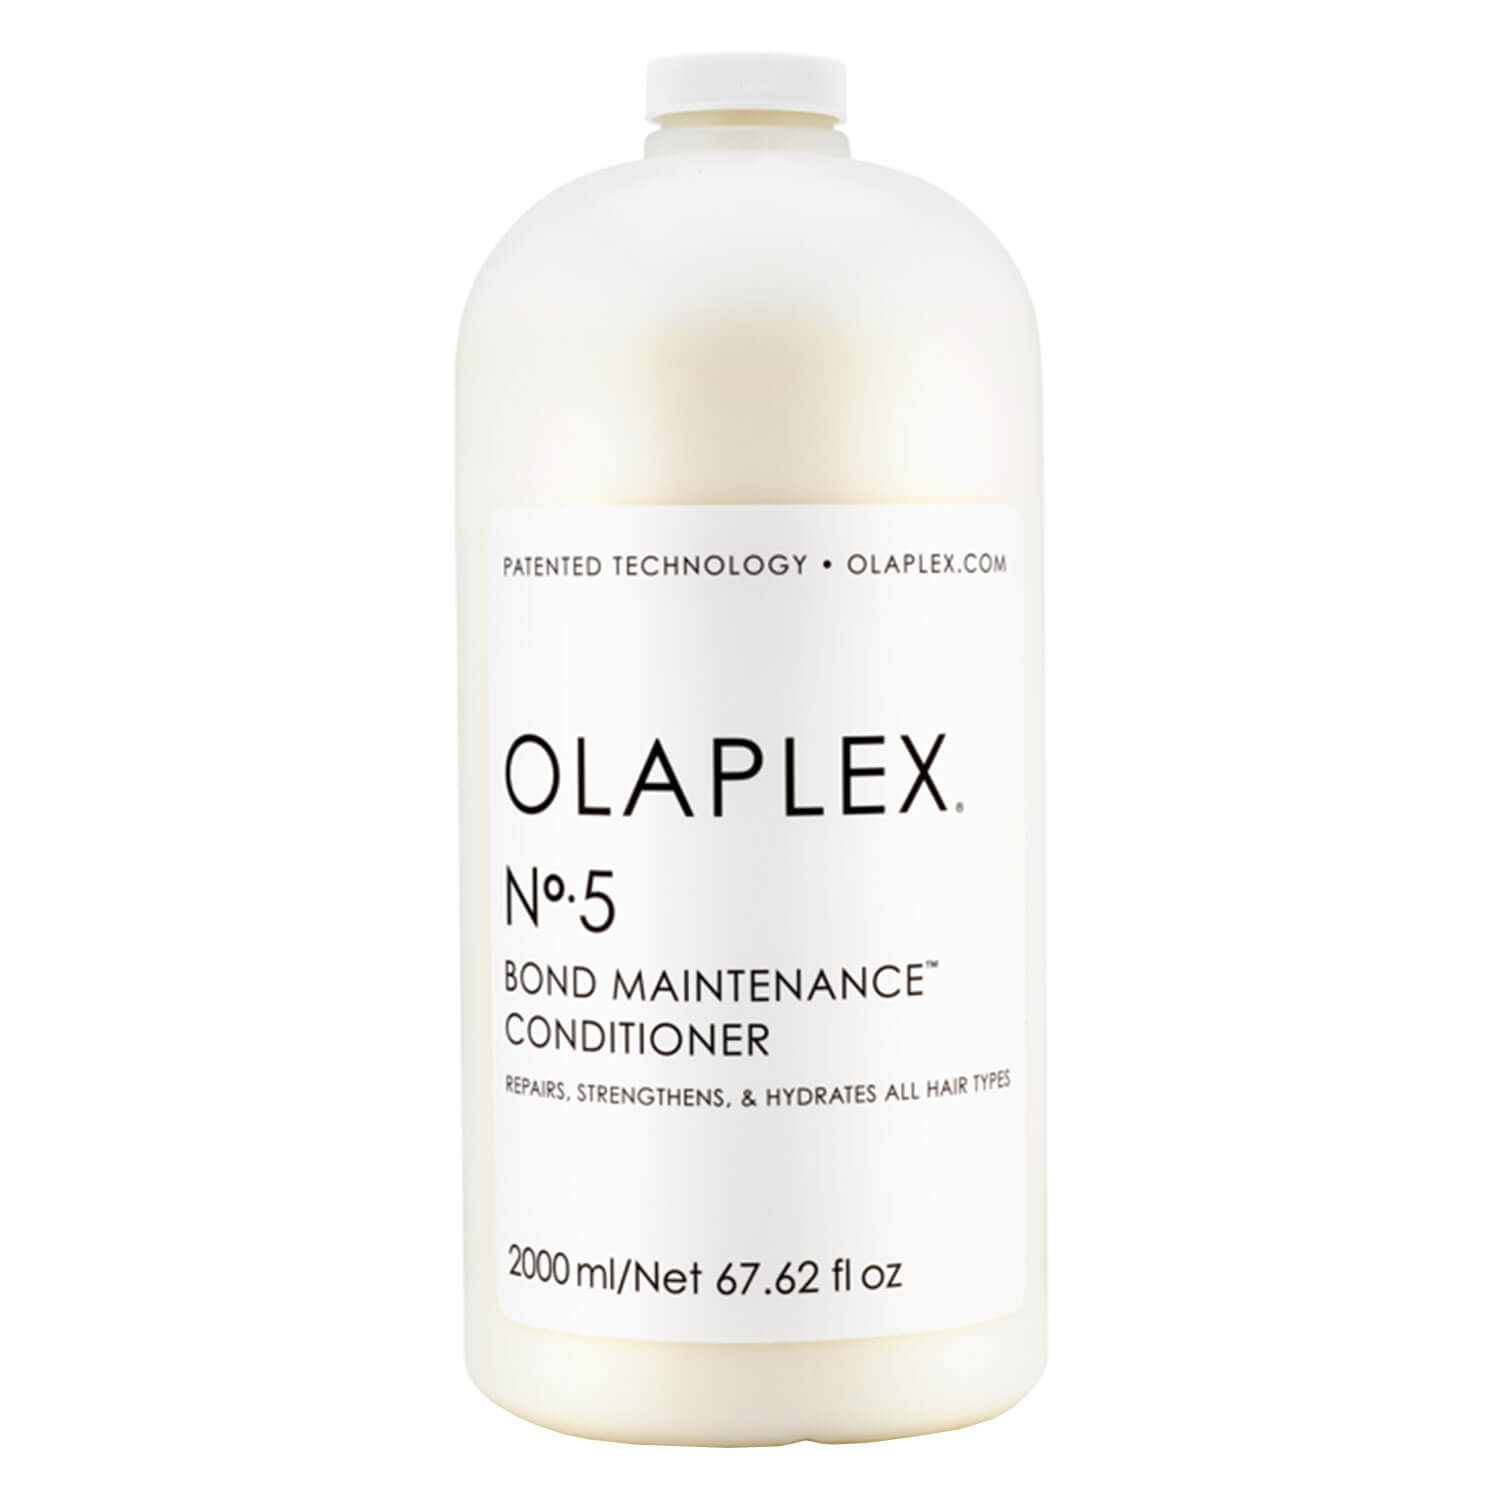 Olaplex - Bond Maintenance Conditioner No. 5